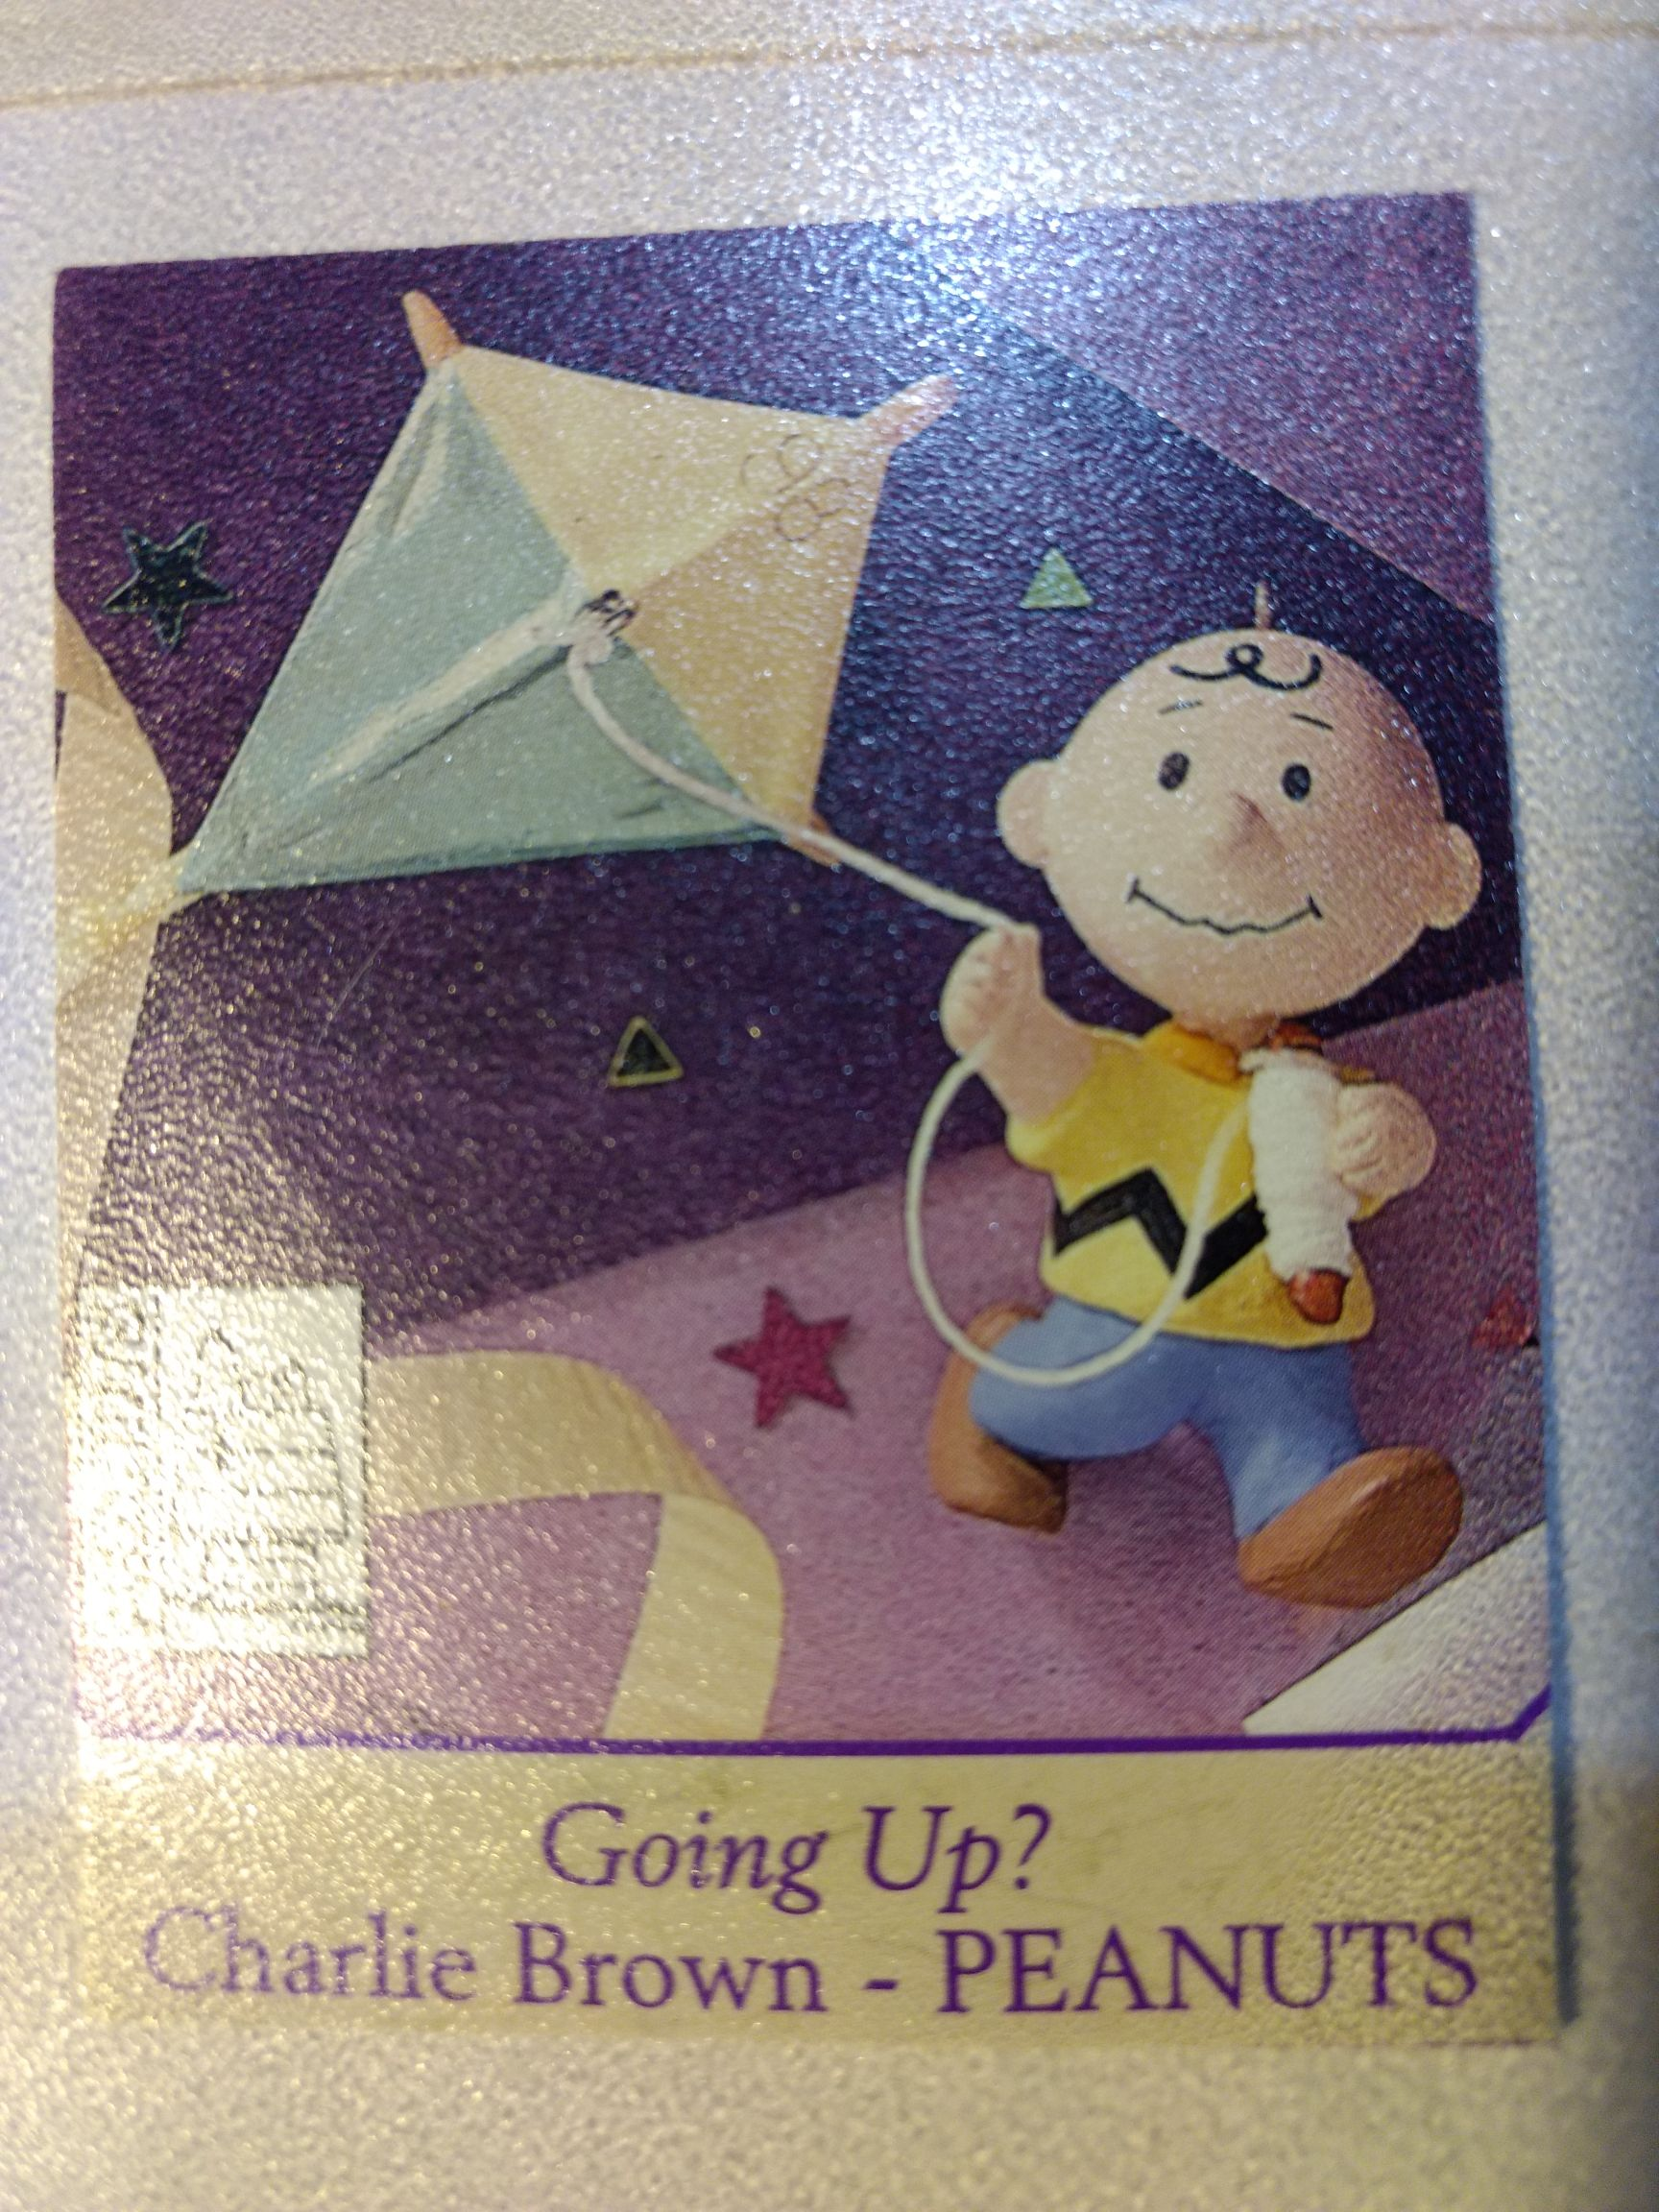 Peanuts Gang - Charlie Brown - Going Up? Ornament - Hallmark front image (front cover)